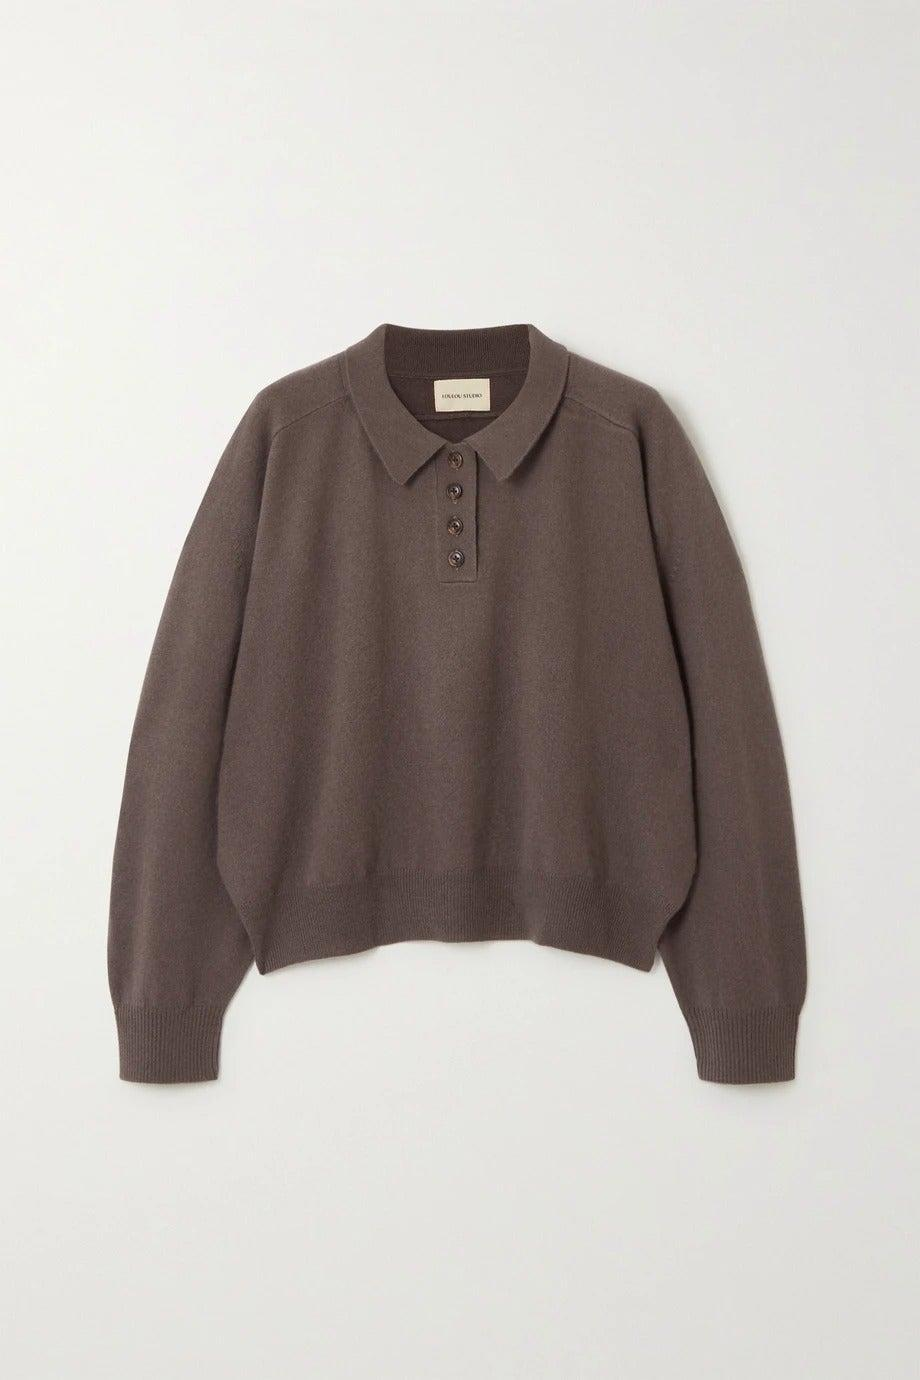 """<br><br><strong>LOULOU STUDIO</strong> Forana Cashmere Sweater, $, available at <a href=""""https://www.net-a-porter.com/en-gb/shop/product/loulou-studio/forana-cashmere-sweater/1265905"""" rel=""""nofollow noopener"""" target=""""_blank"""" data-ylk=""""slk:Net-A-Porter"""" class=""""link rapid-noclick-resp"""">Net-A-Porter</a>"""